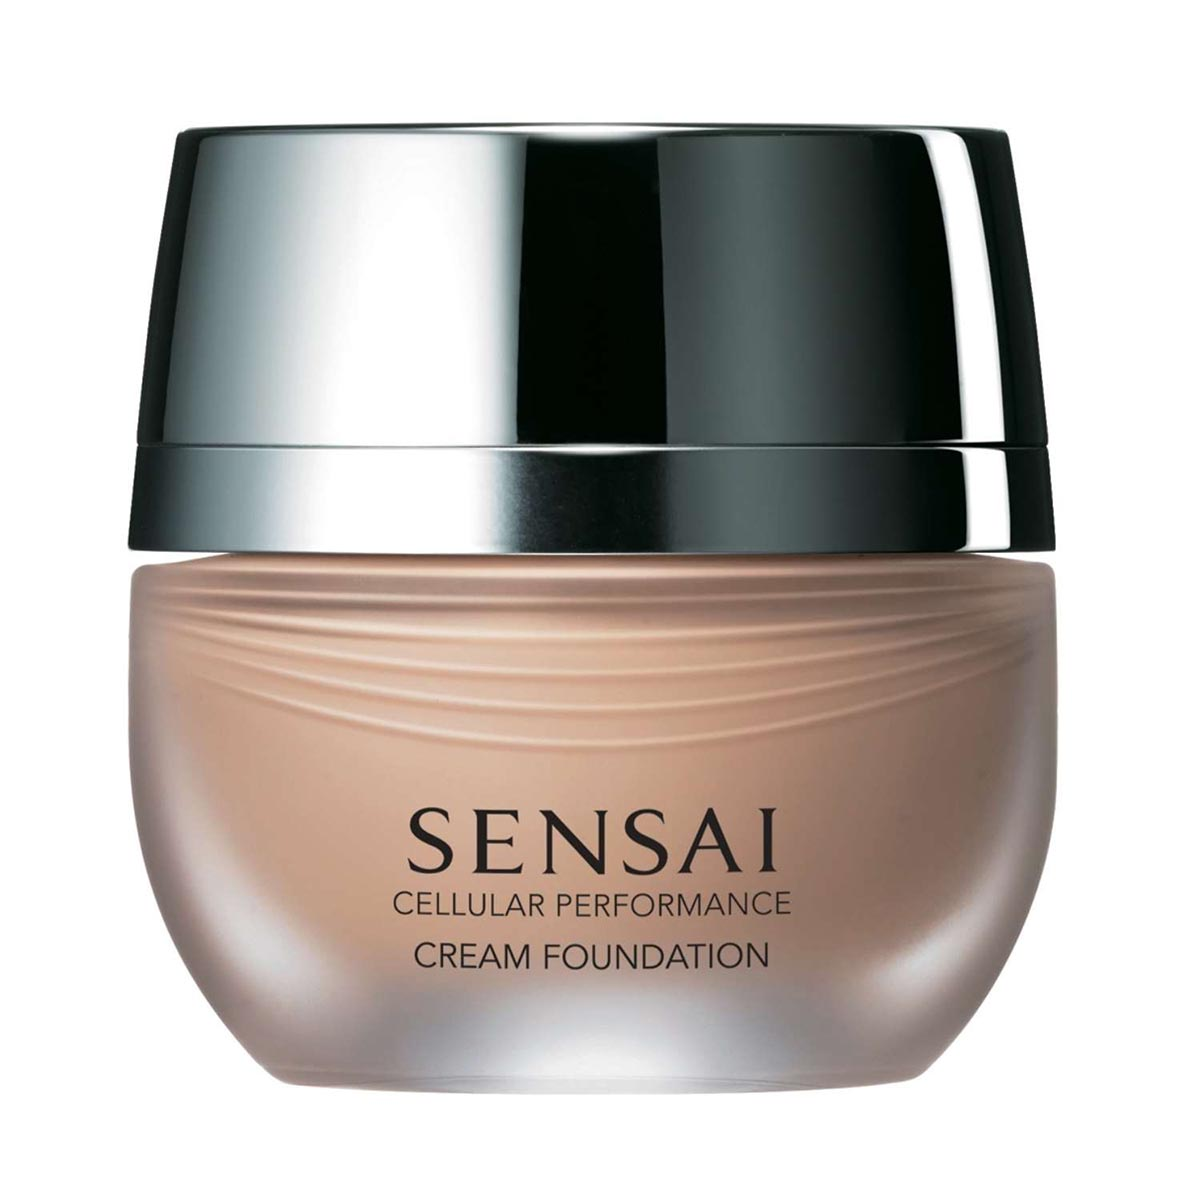 Kanebo sensai cellular performance cream foundation 25